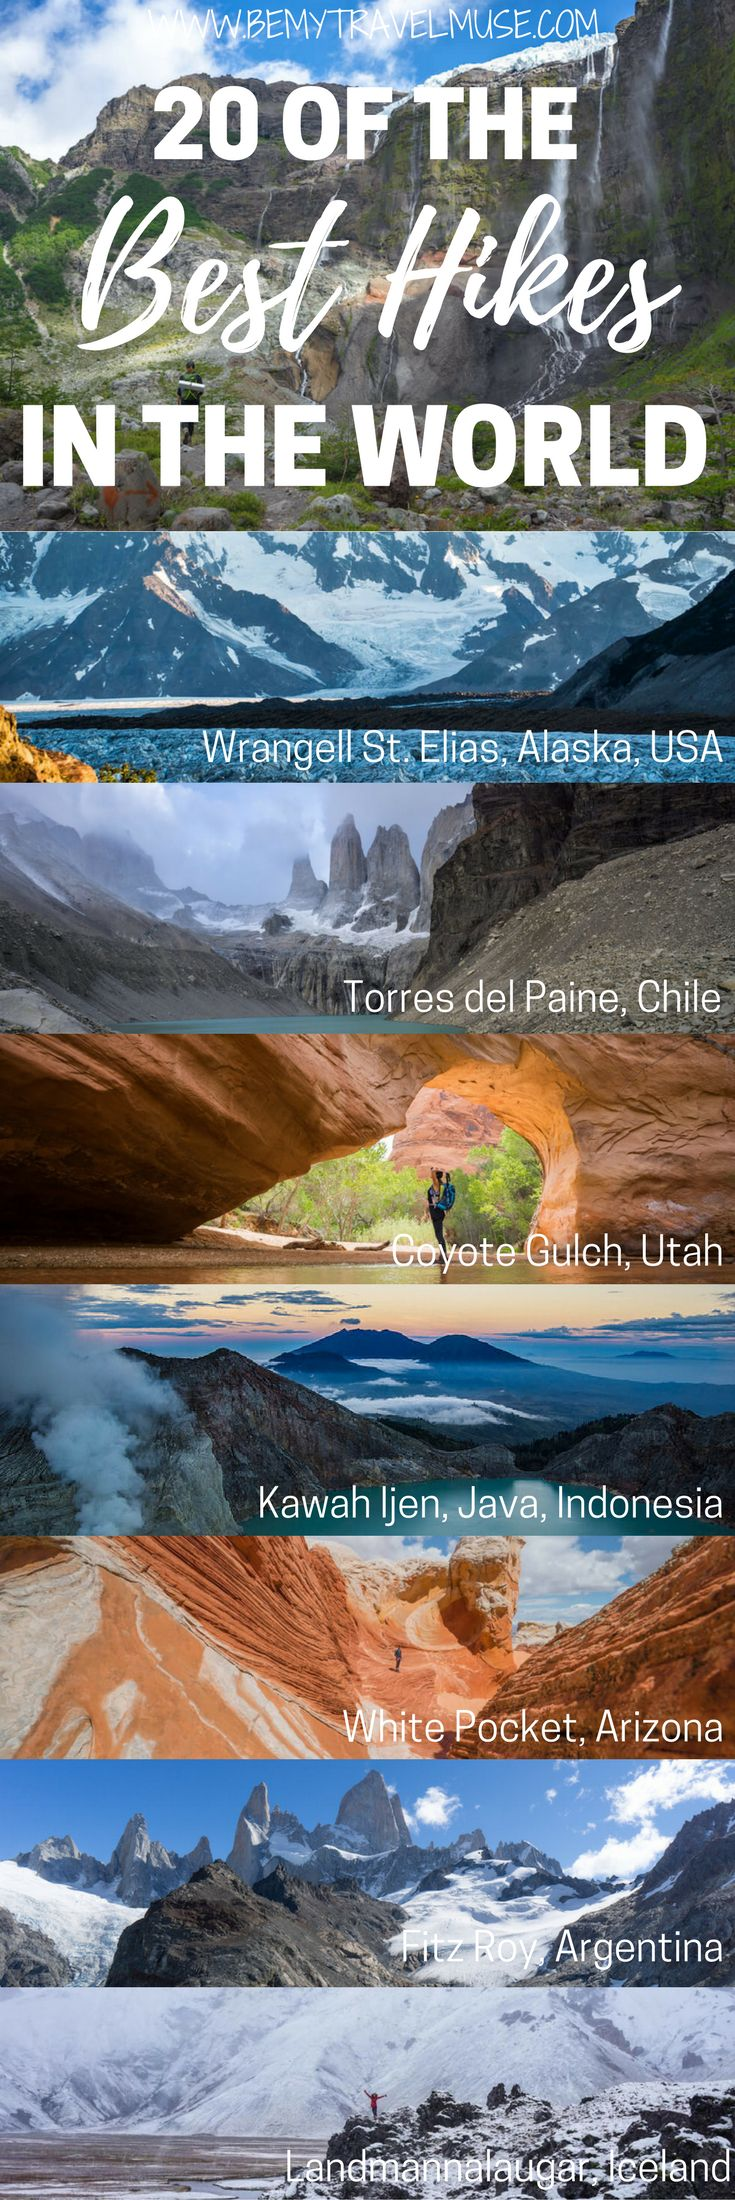 20 of the best hiking trails in the world, for your next outdoor adventure! Kyrgyzstan | Wrangell St. Elias Alaska | Annapurna Circuit Nepal | Huemul Circuit Argentina | Torres del Paine Chile | Coyote Gulch Utah | Kawah Ijen Java Indonesia | Cerro Tronador Argentina | Edelweissweg Switzerland | The Drakensberg South Africa | Mt. Rinjani, Lombok, Indonesia | White Pocket Arizona | Mount Kinabalu Malaysia